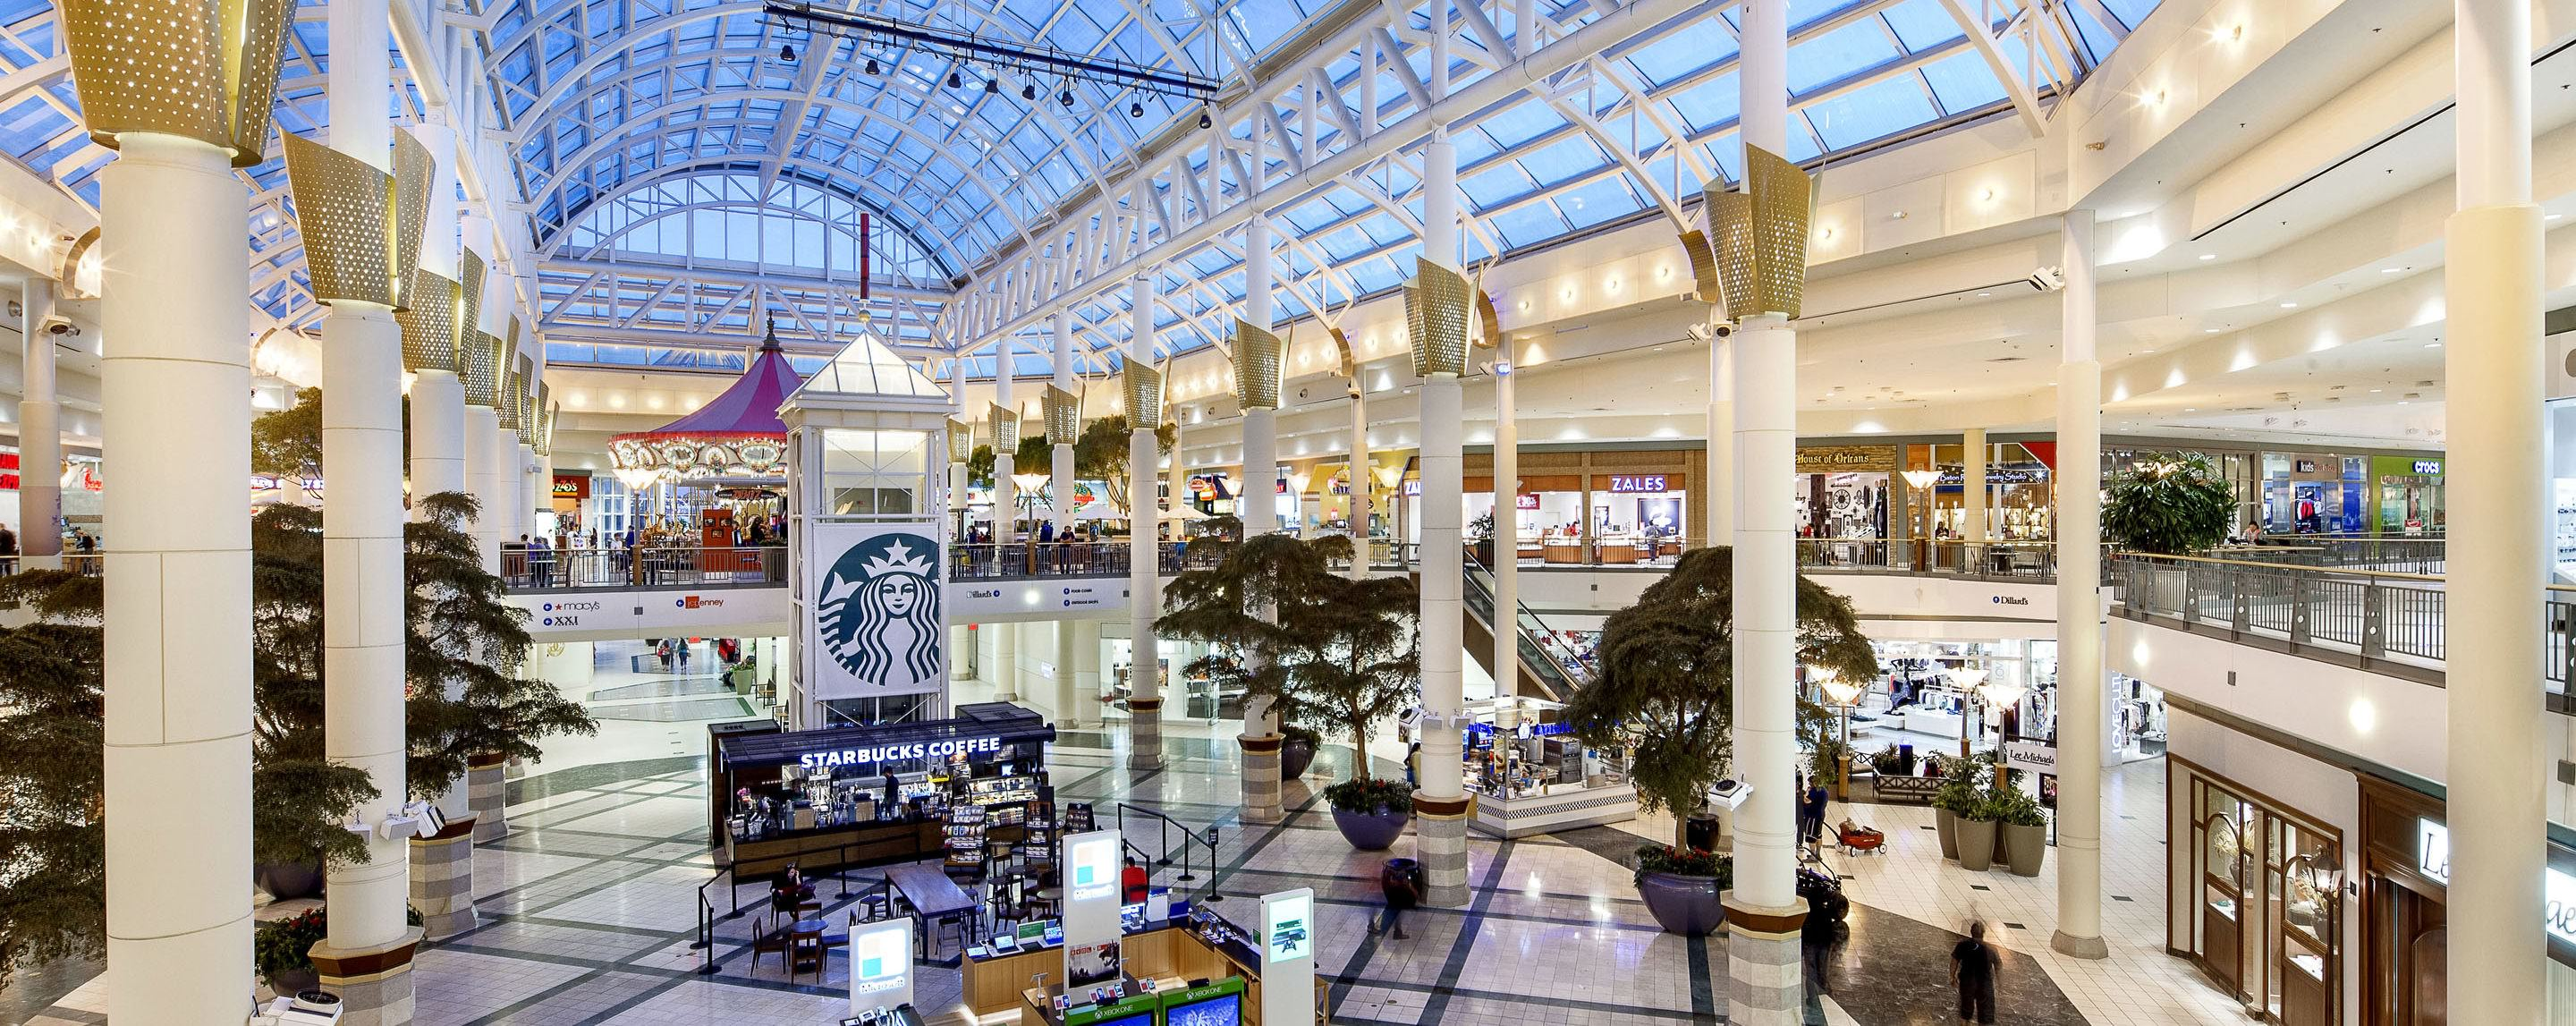 The second level of the indoor atrium at the Mall of Louisiana oversees a line of stores and a Starbucks kiosks.